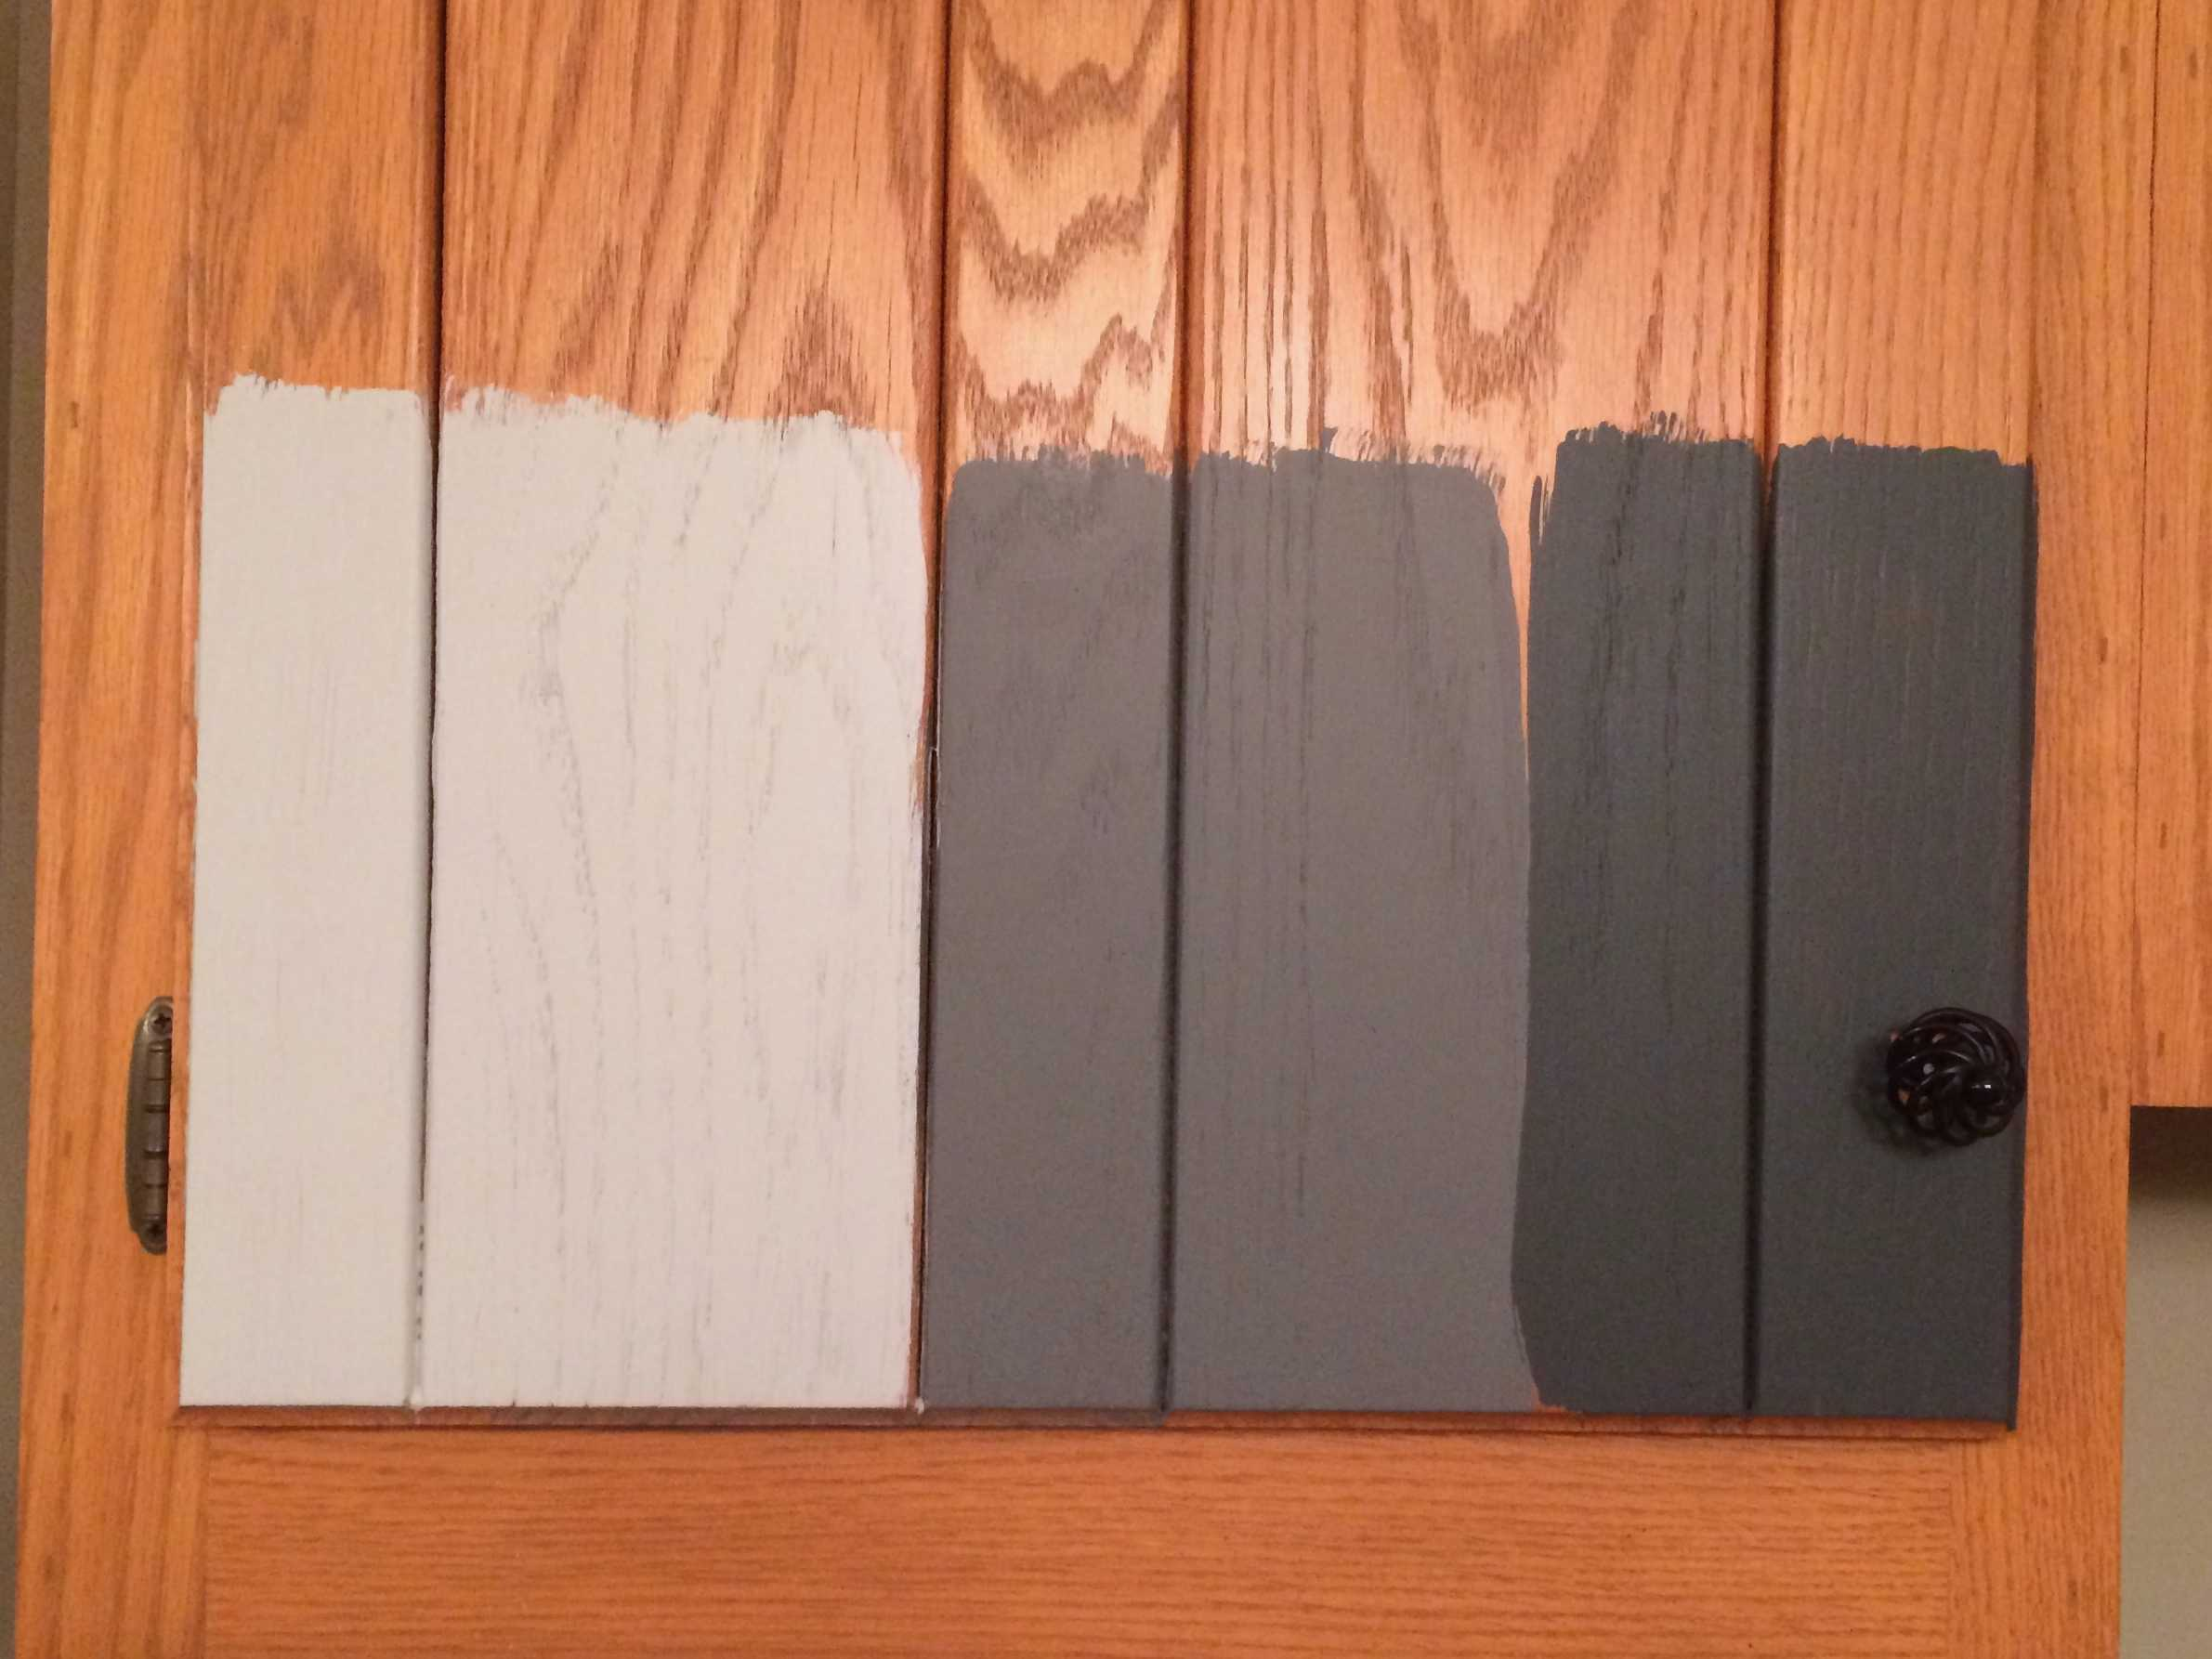 How To Paint Kitchen Cabinets Without Sanding Or Priming